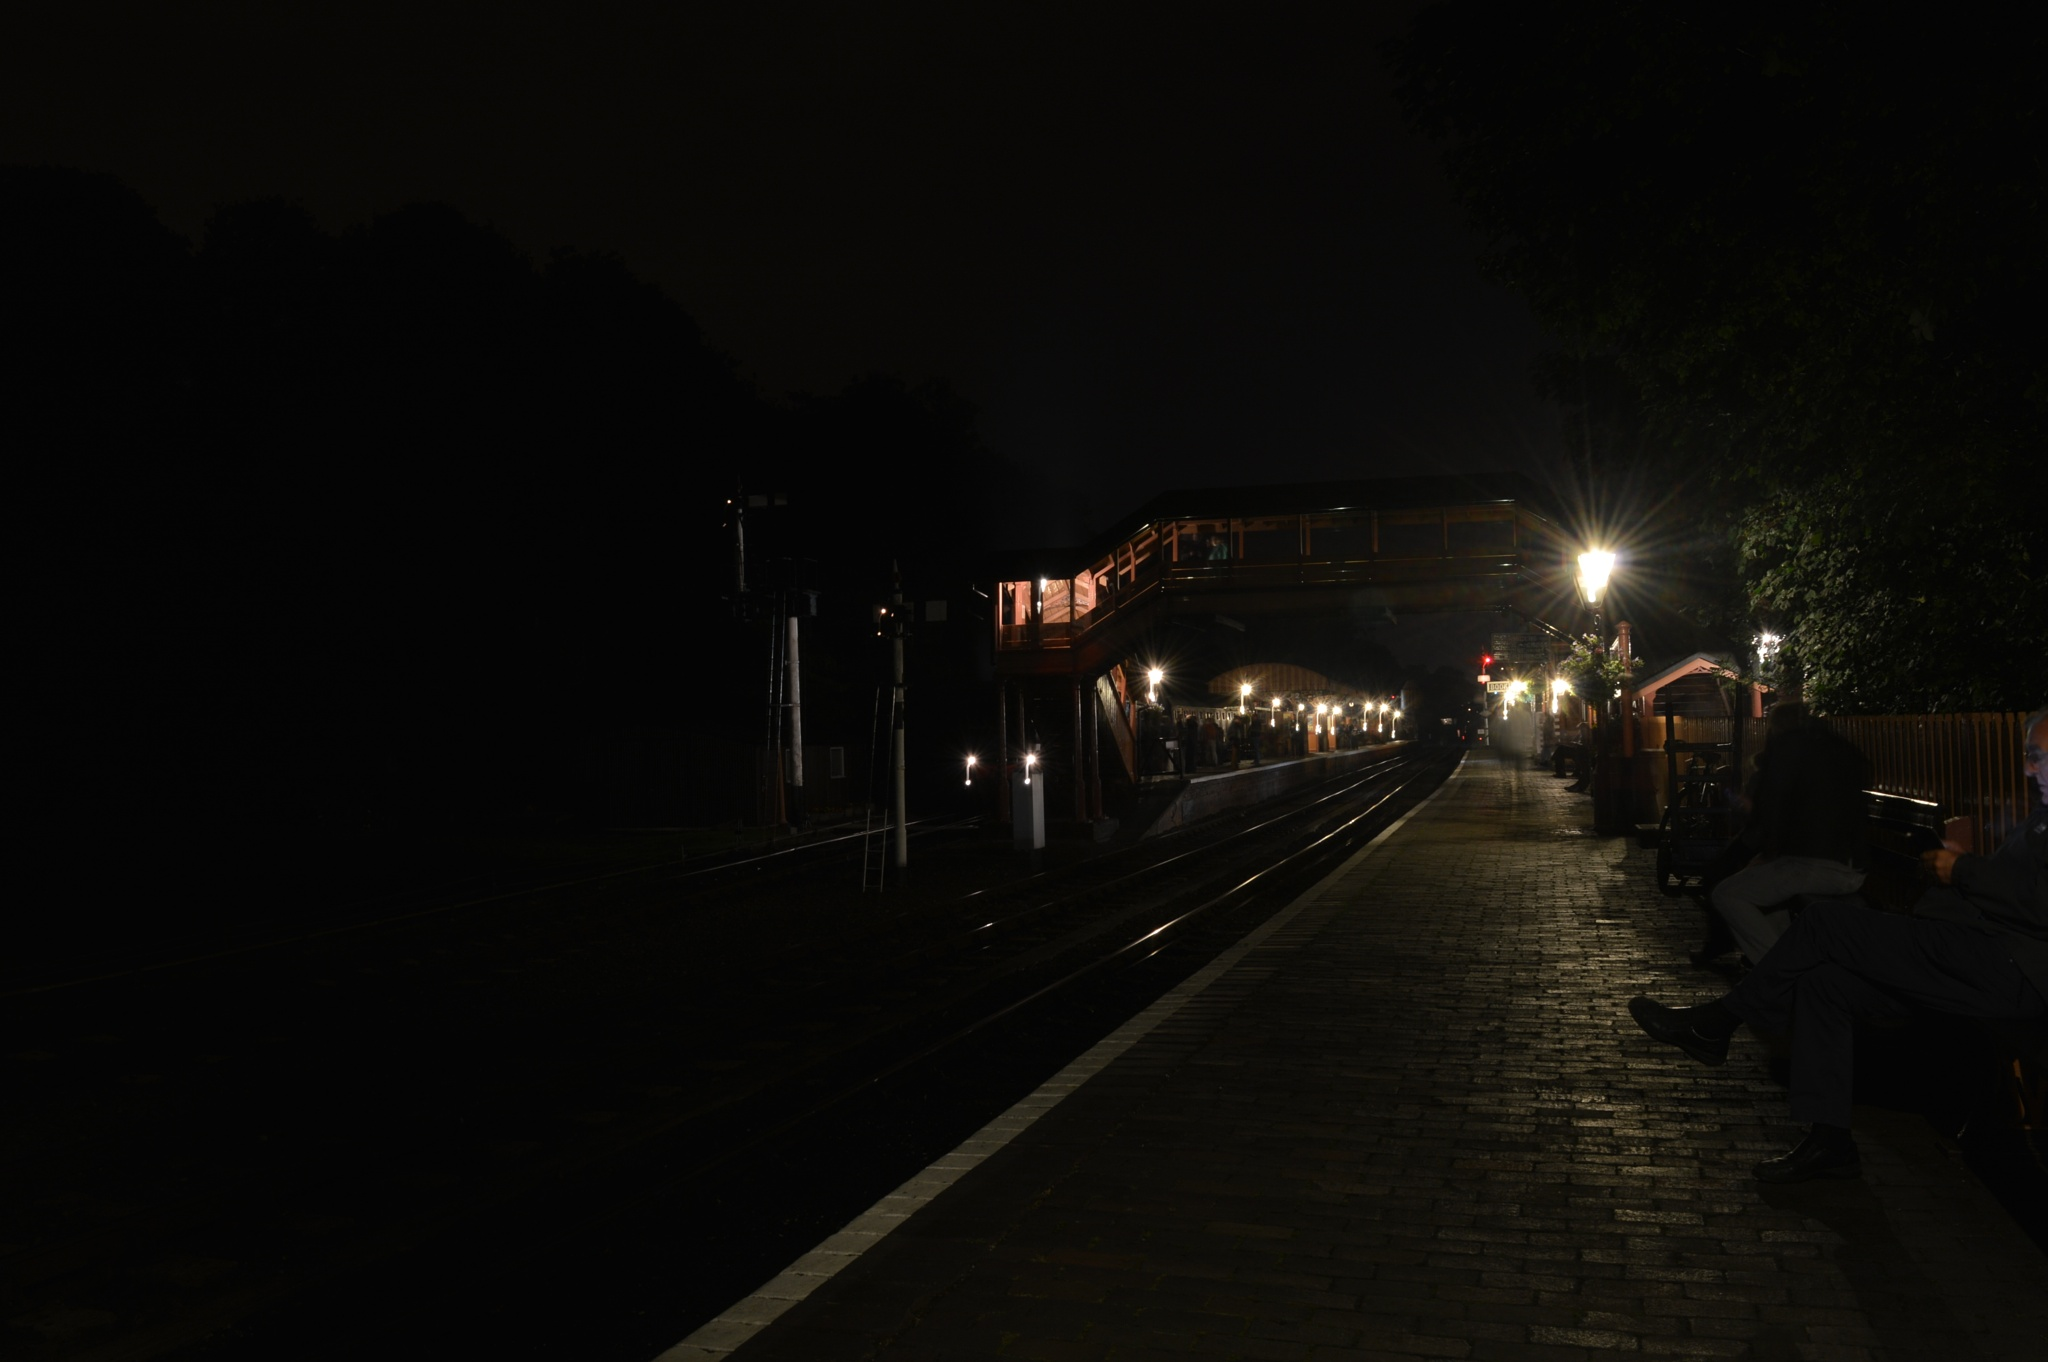 Bewdley Station at night by adrian.williams.58323